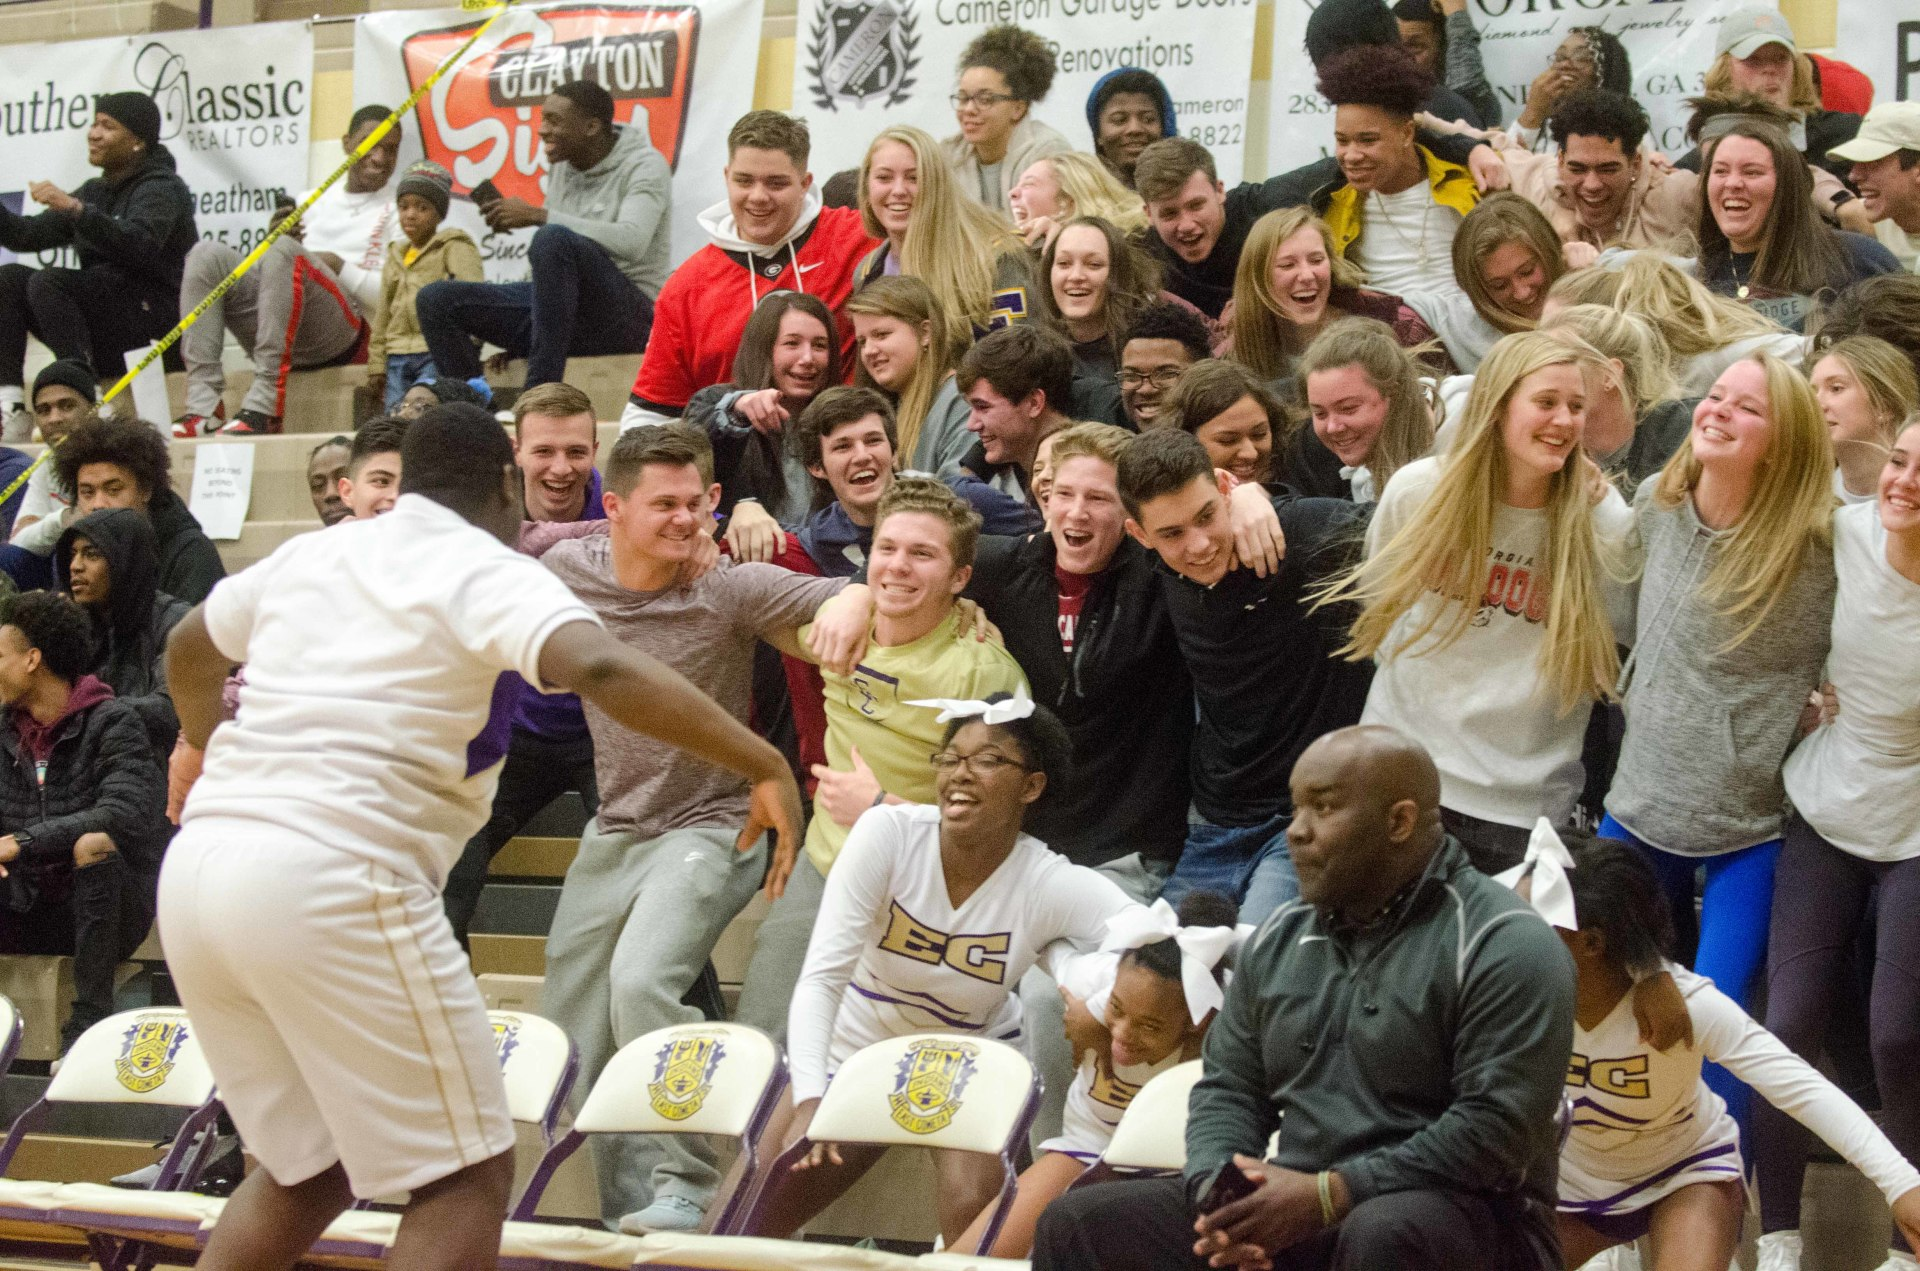 East Coweta's student section is hoping to give home teams a boost Tuesday vs. Pebblebrook.